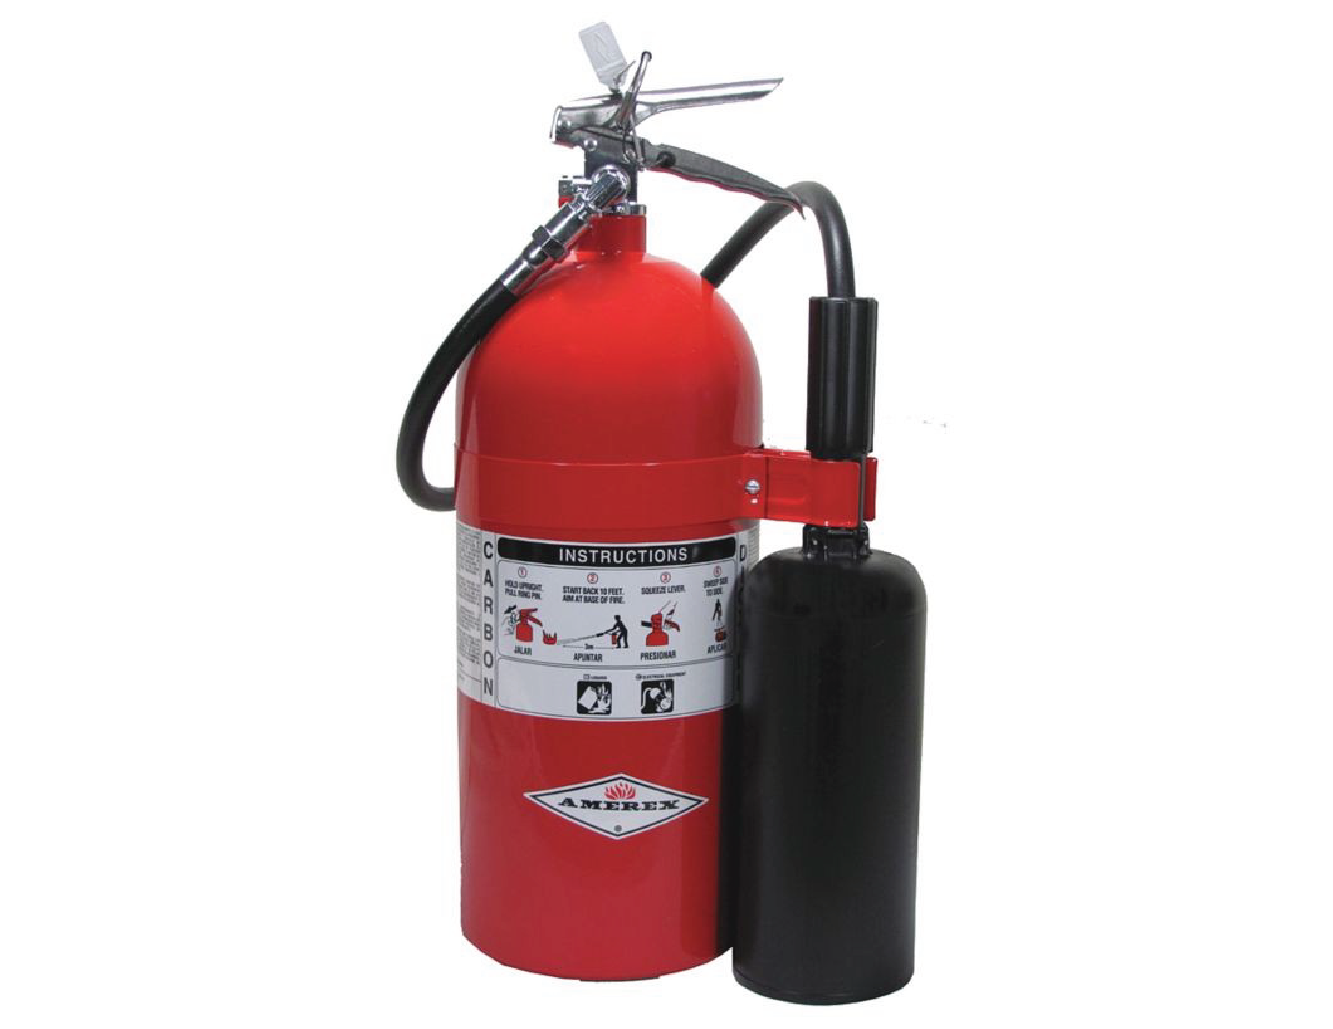 10lb CO2 Fire Extinguisher